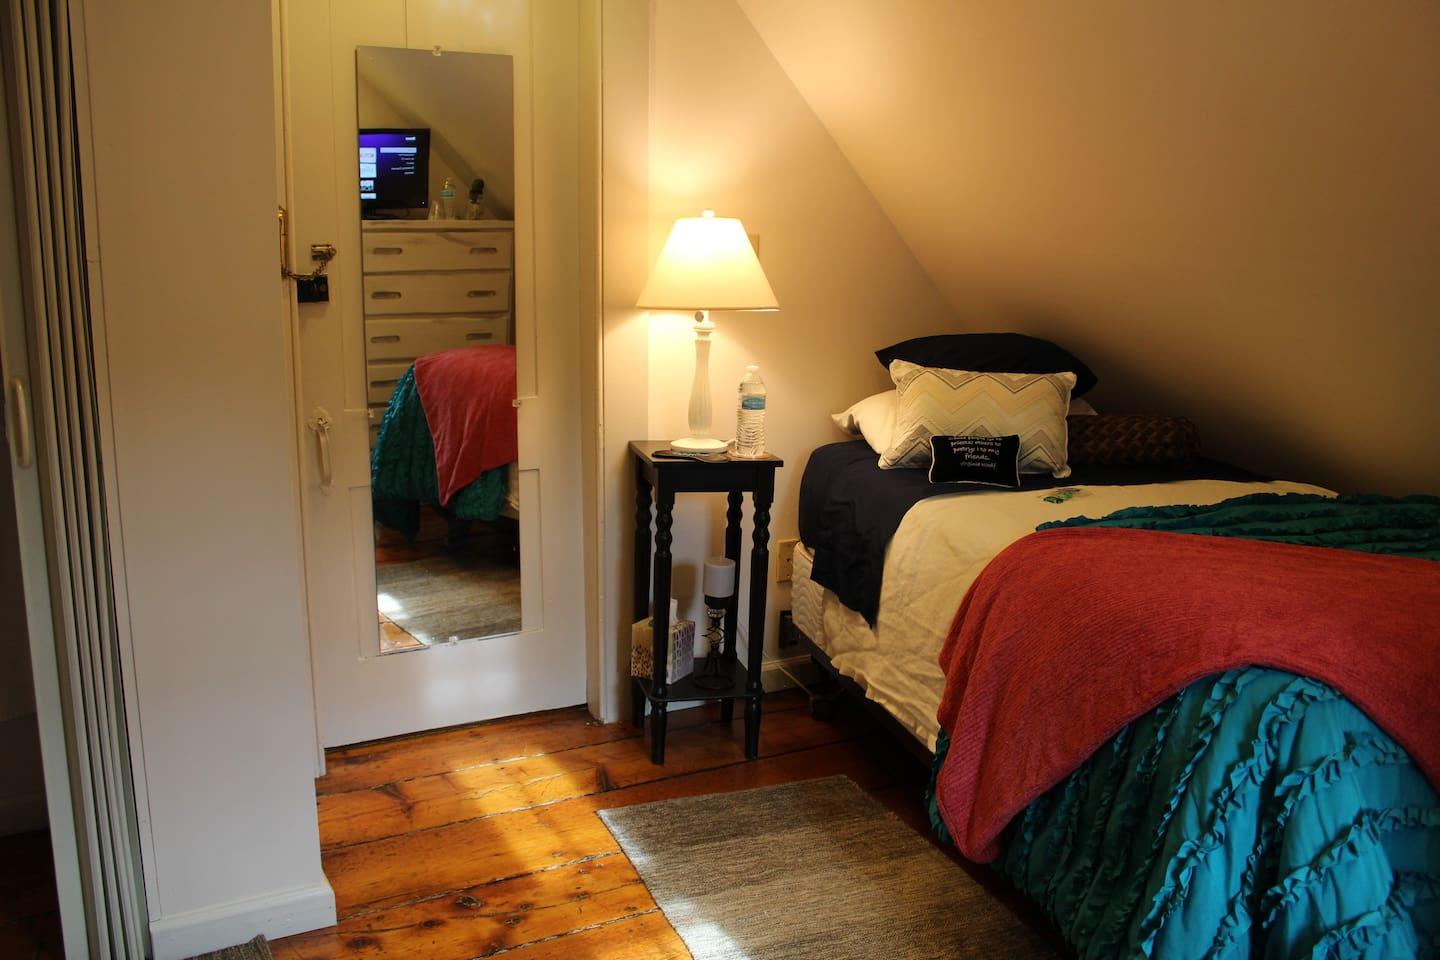 Single bed, Dresser, Streaming TV, Closet and desk area